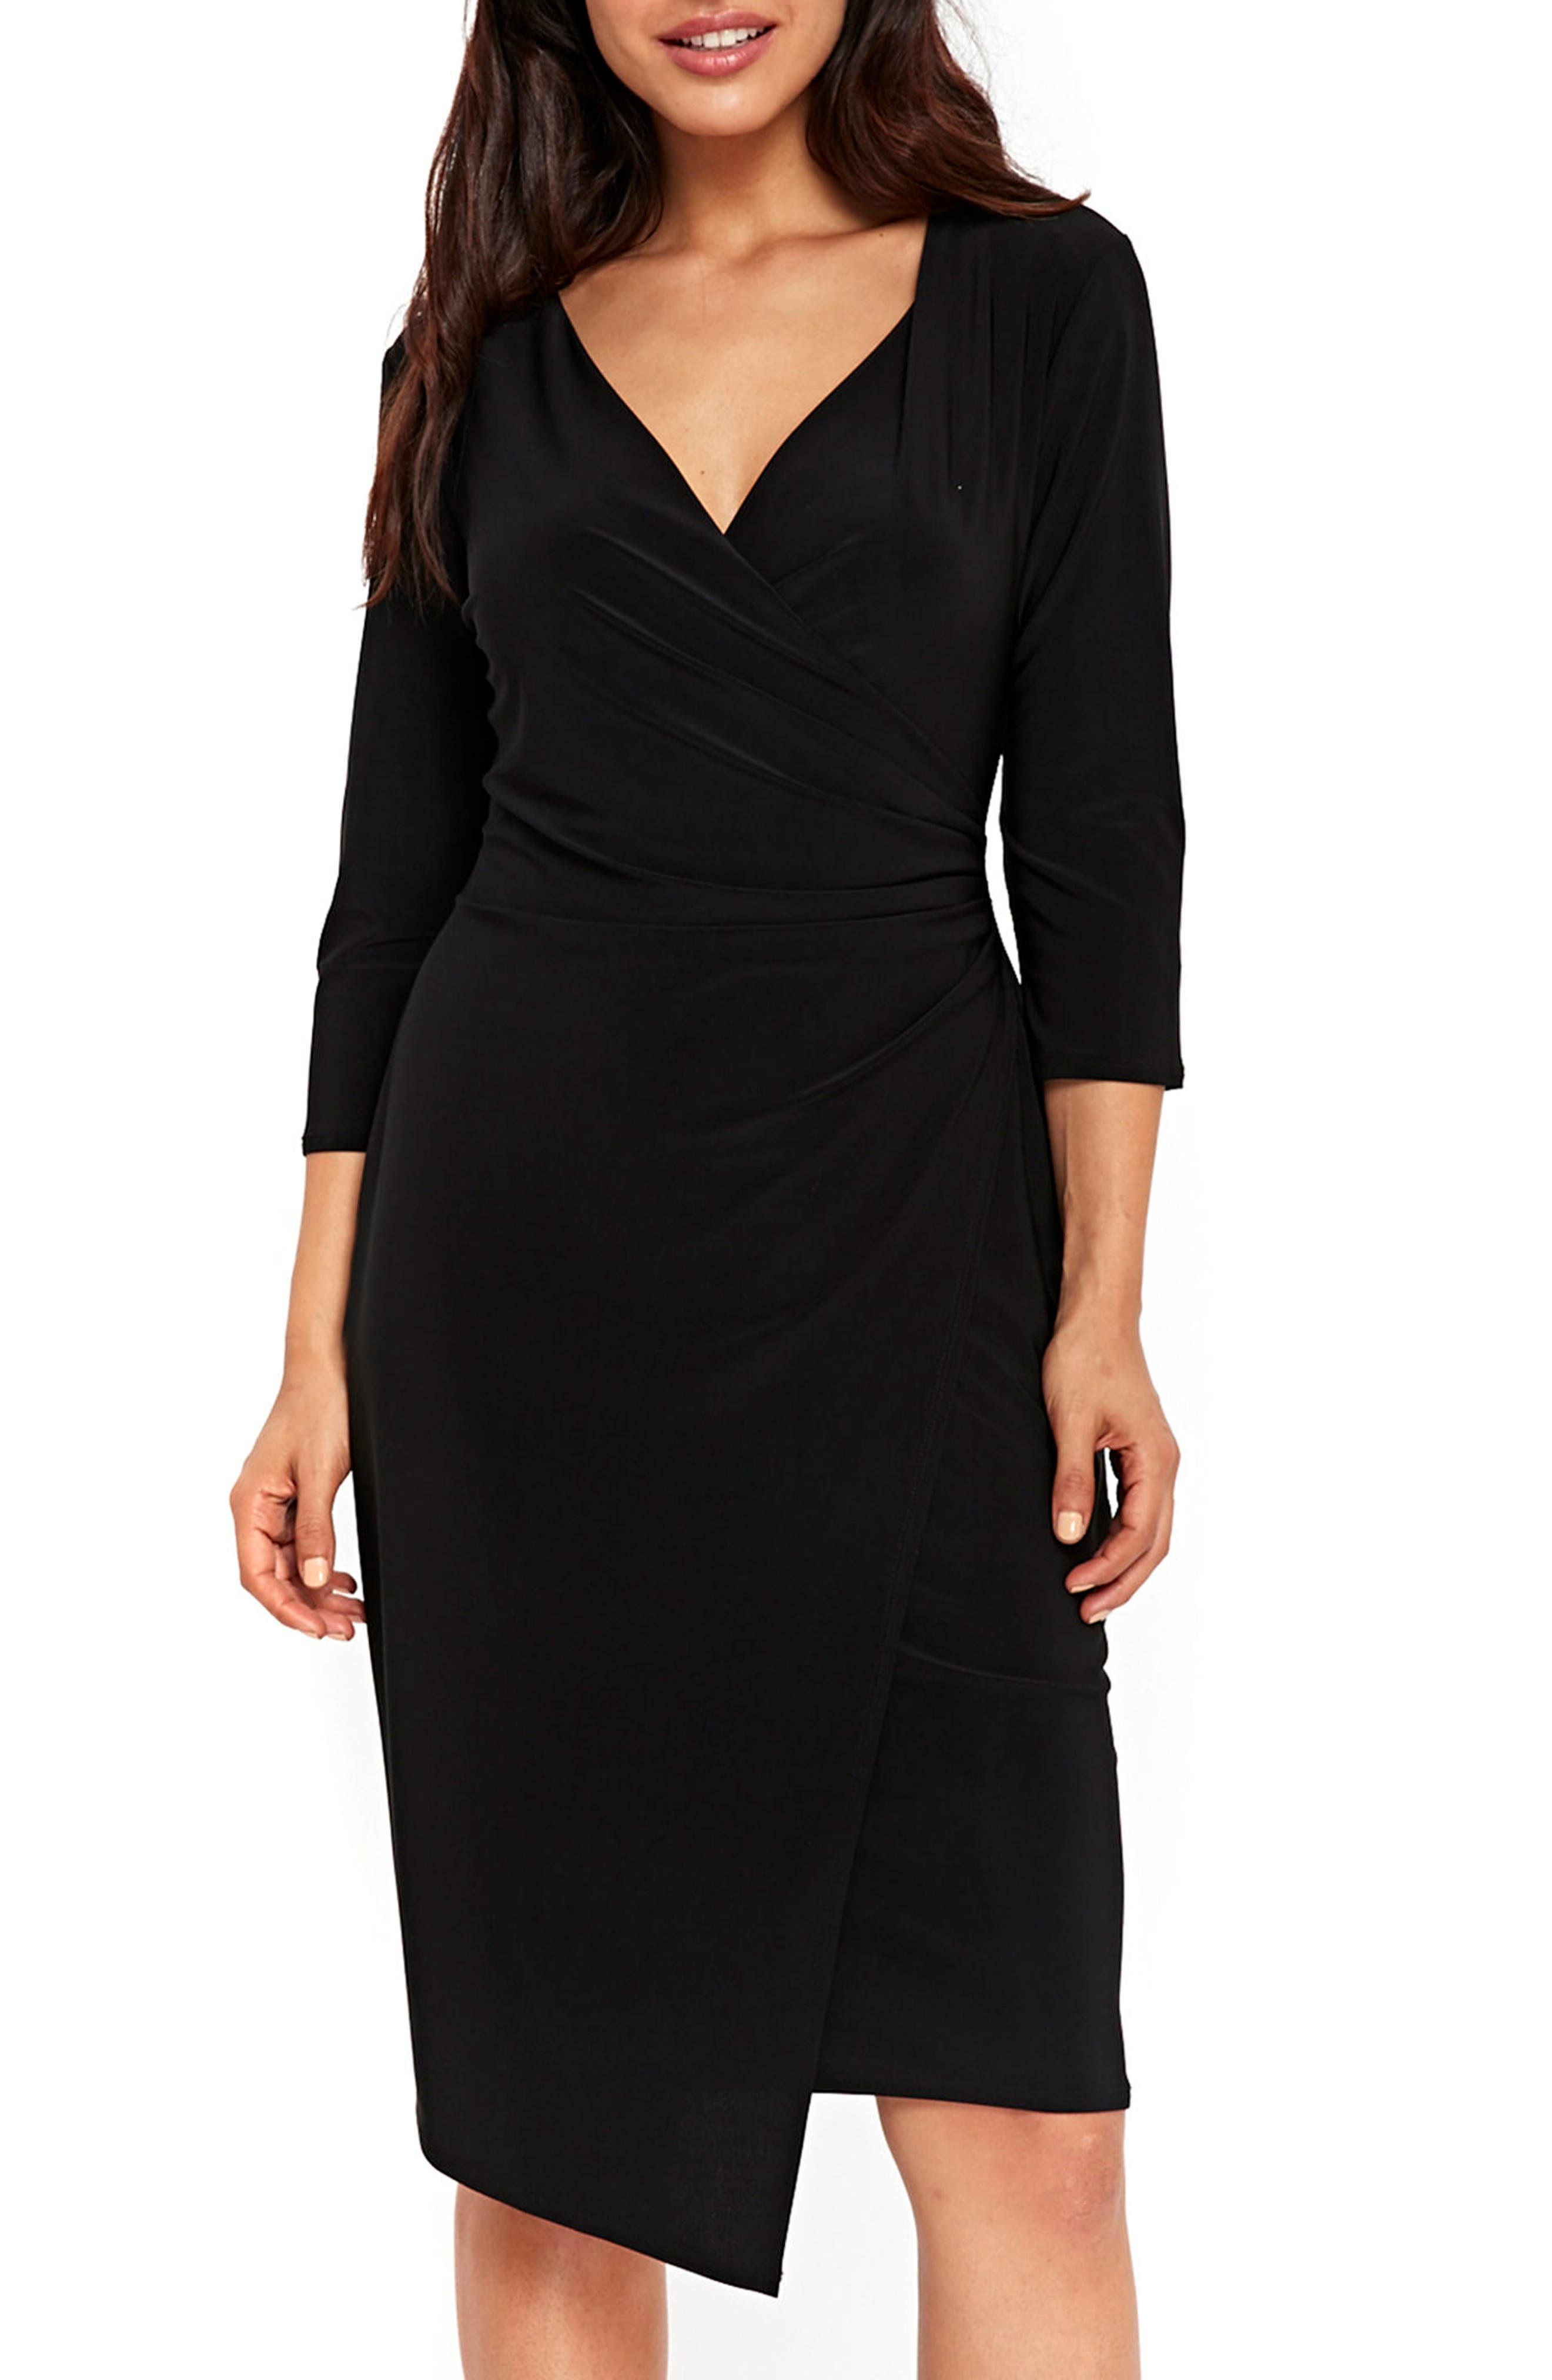 Ity Wrap Dress,                         Main,                         color, 001